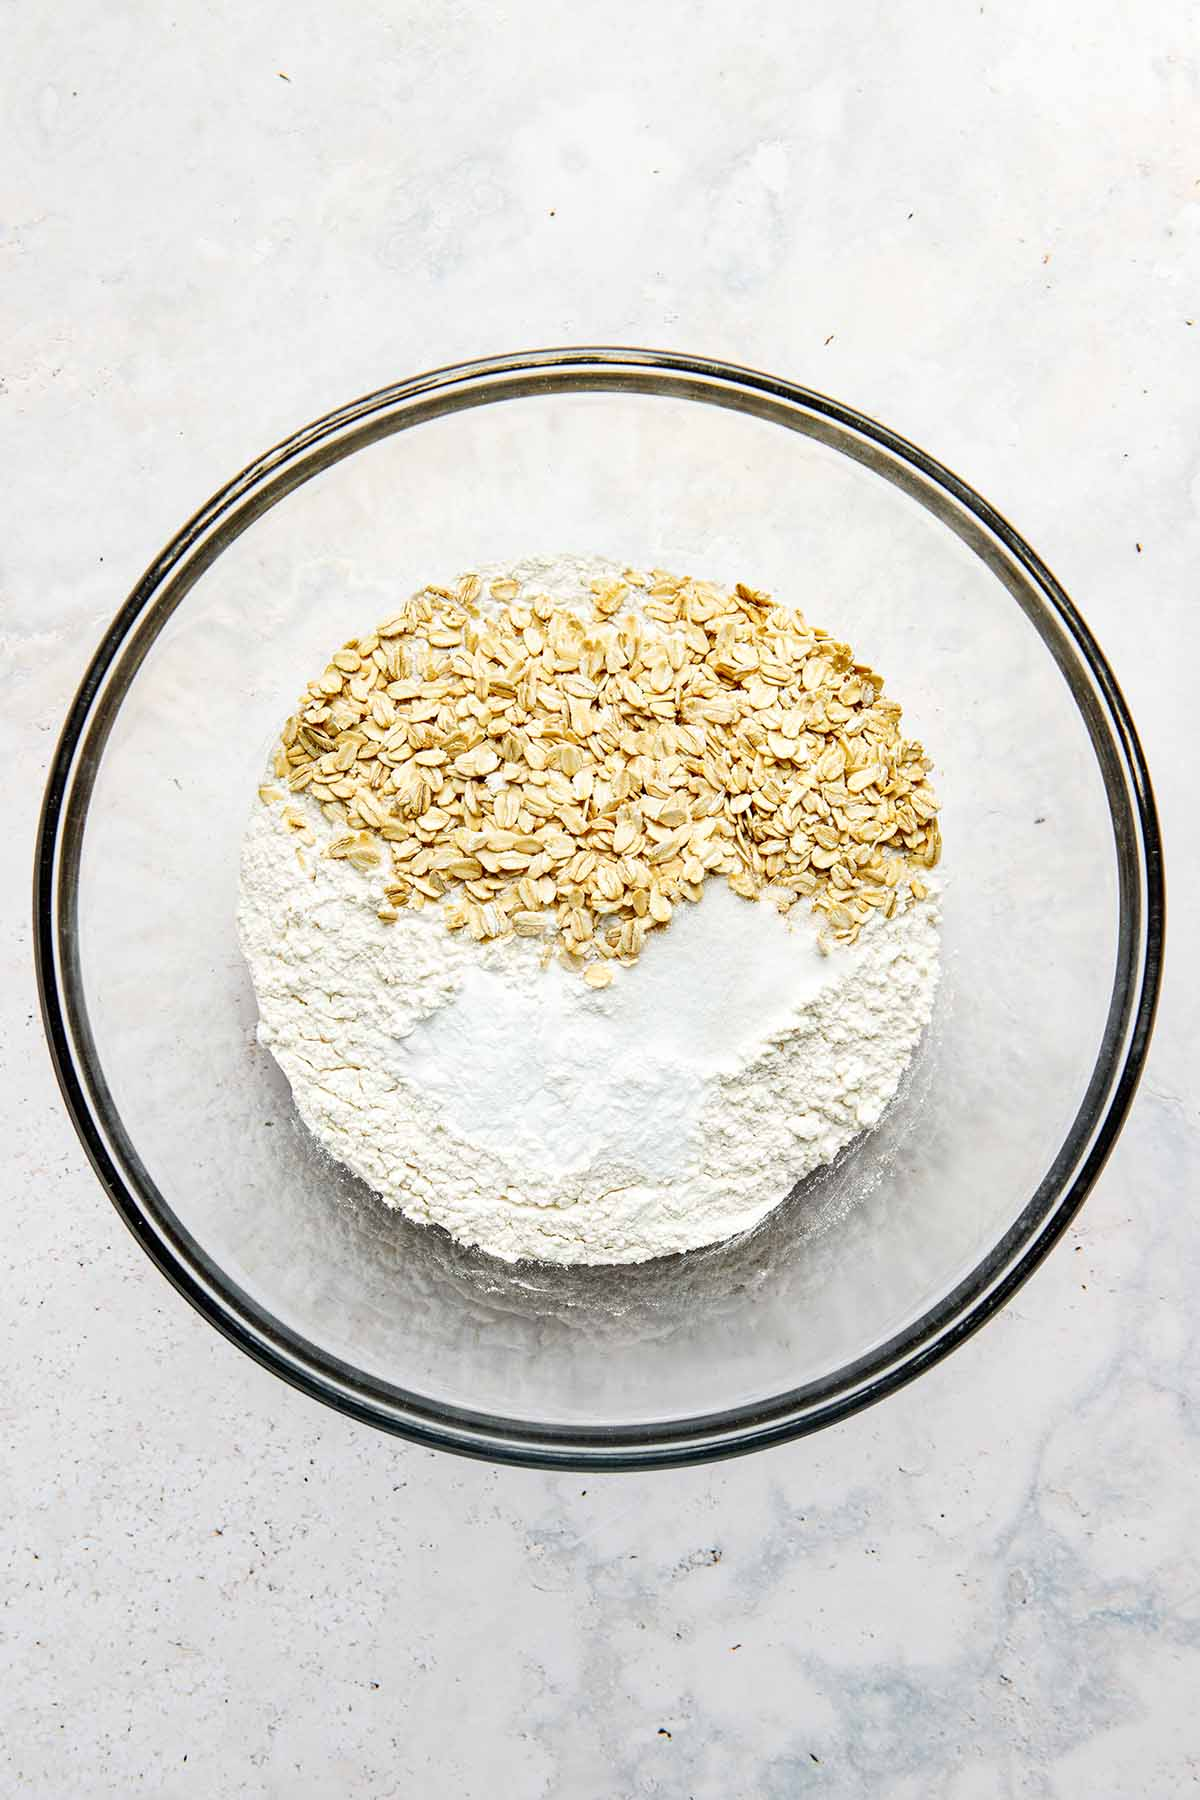 Dry ingredients in a mixing bowl.